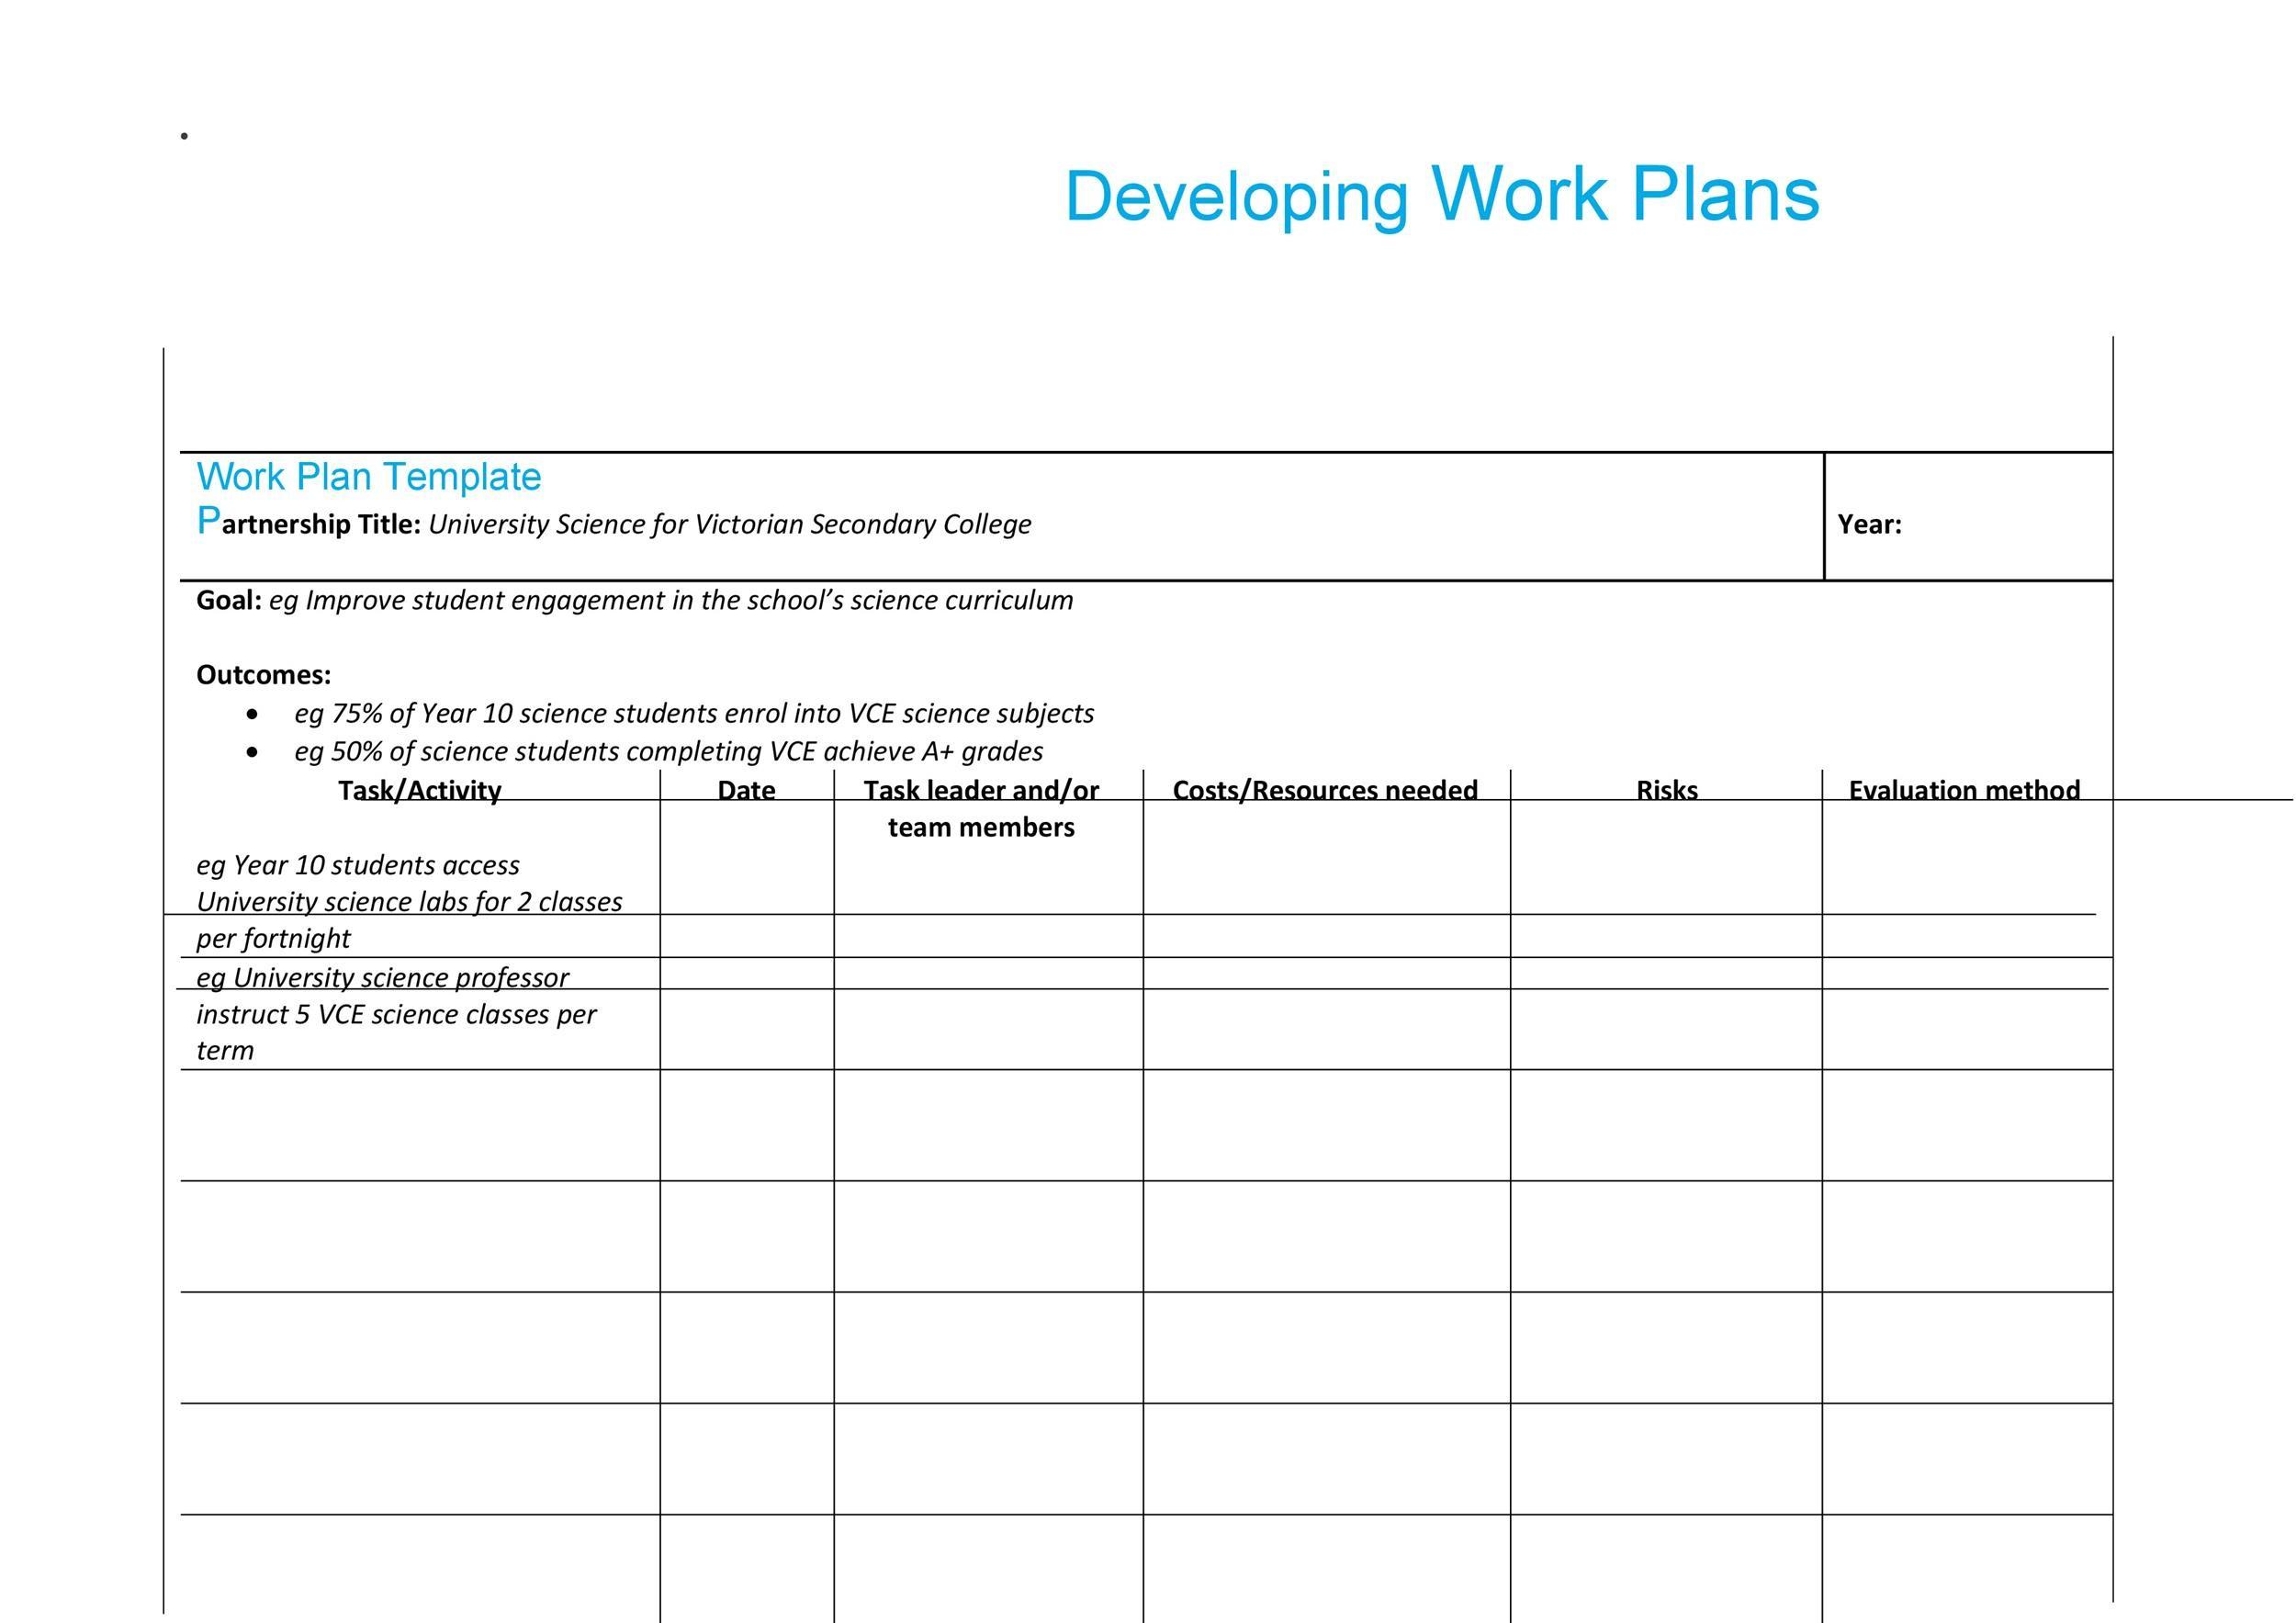 Work Plan - 40 Great Templates  Samples (Excel / Word) - Template Lab